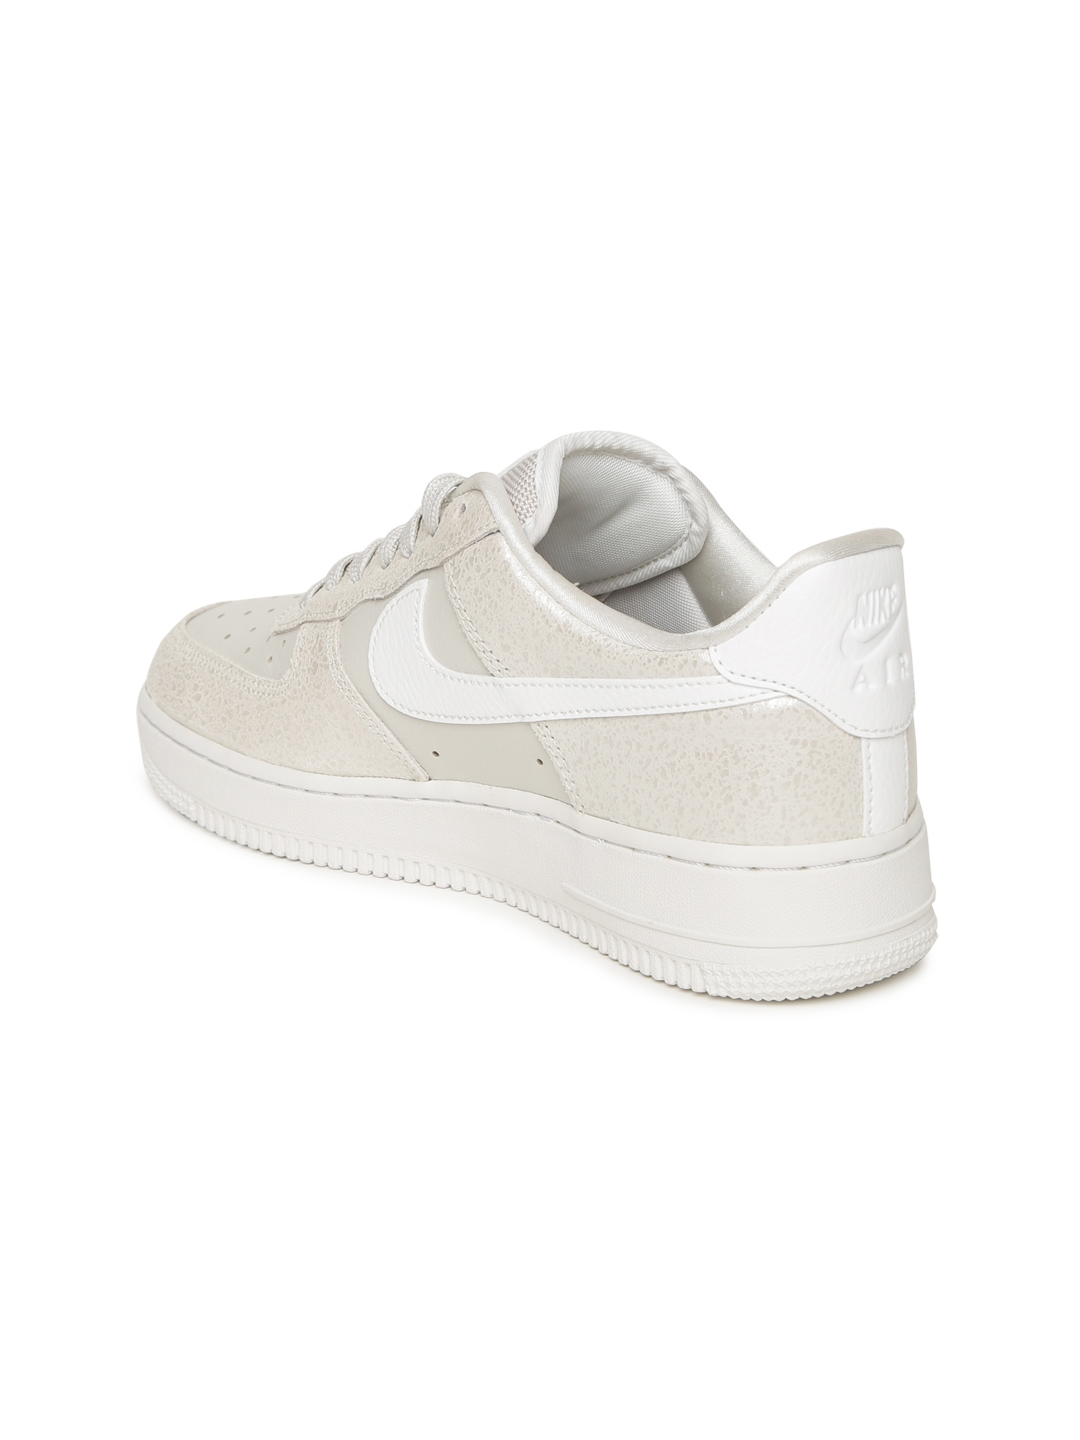 e888686387 Buy Nike Women Off White AIR FORCE 1 '07 PRM Leather Sneakers ...